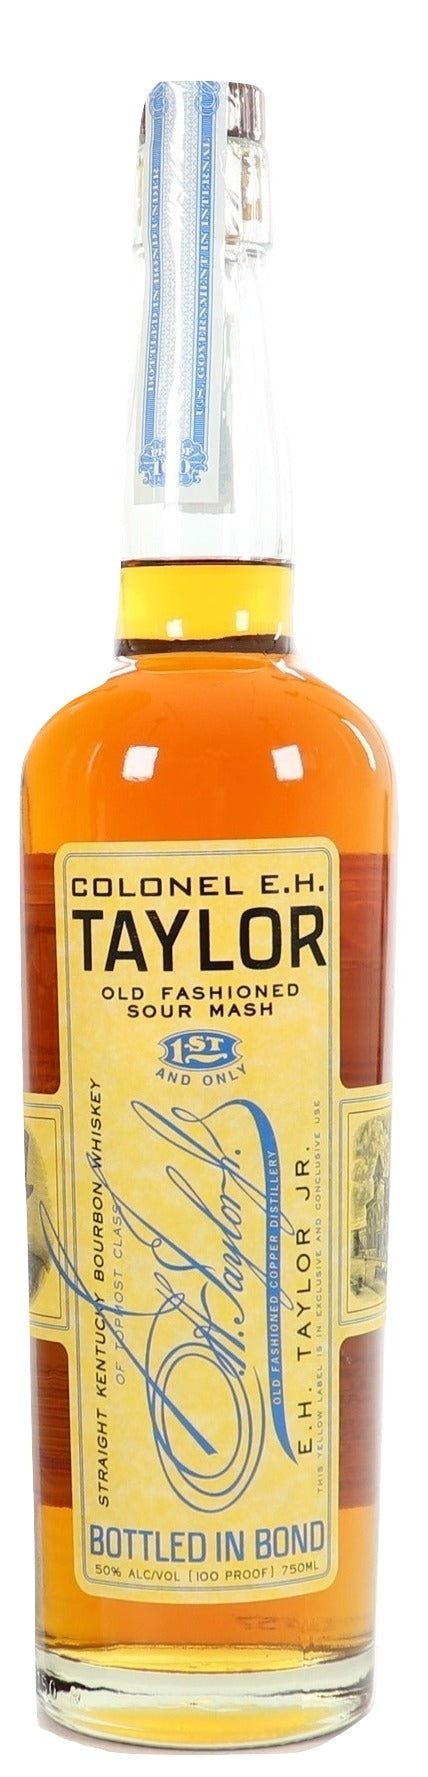 Colonel EH Taylor Old Fashioned Sour Mash For Sale - NativeSpiritsOnline